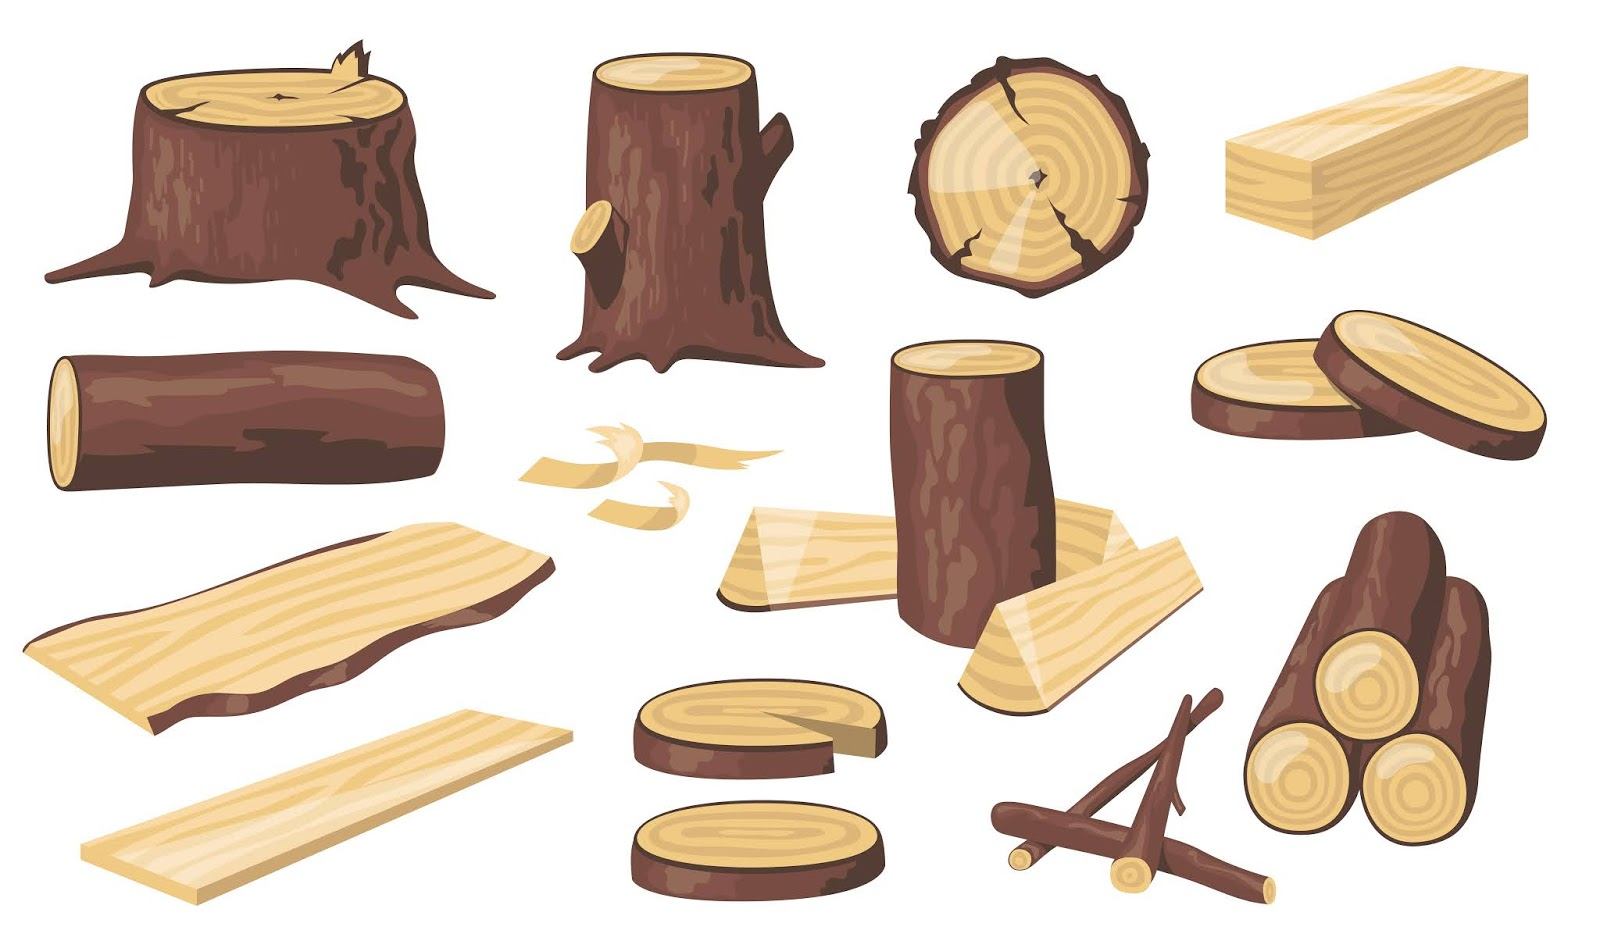 Various Wood Logs Trunks Free Download Vector CDR, AI, EPS and PNG Formats